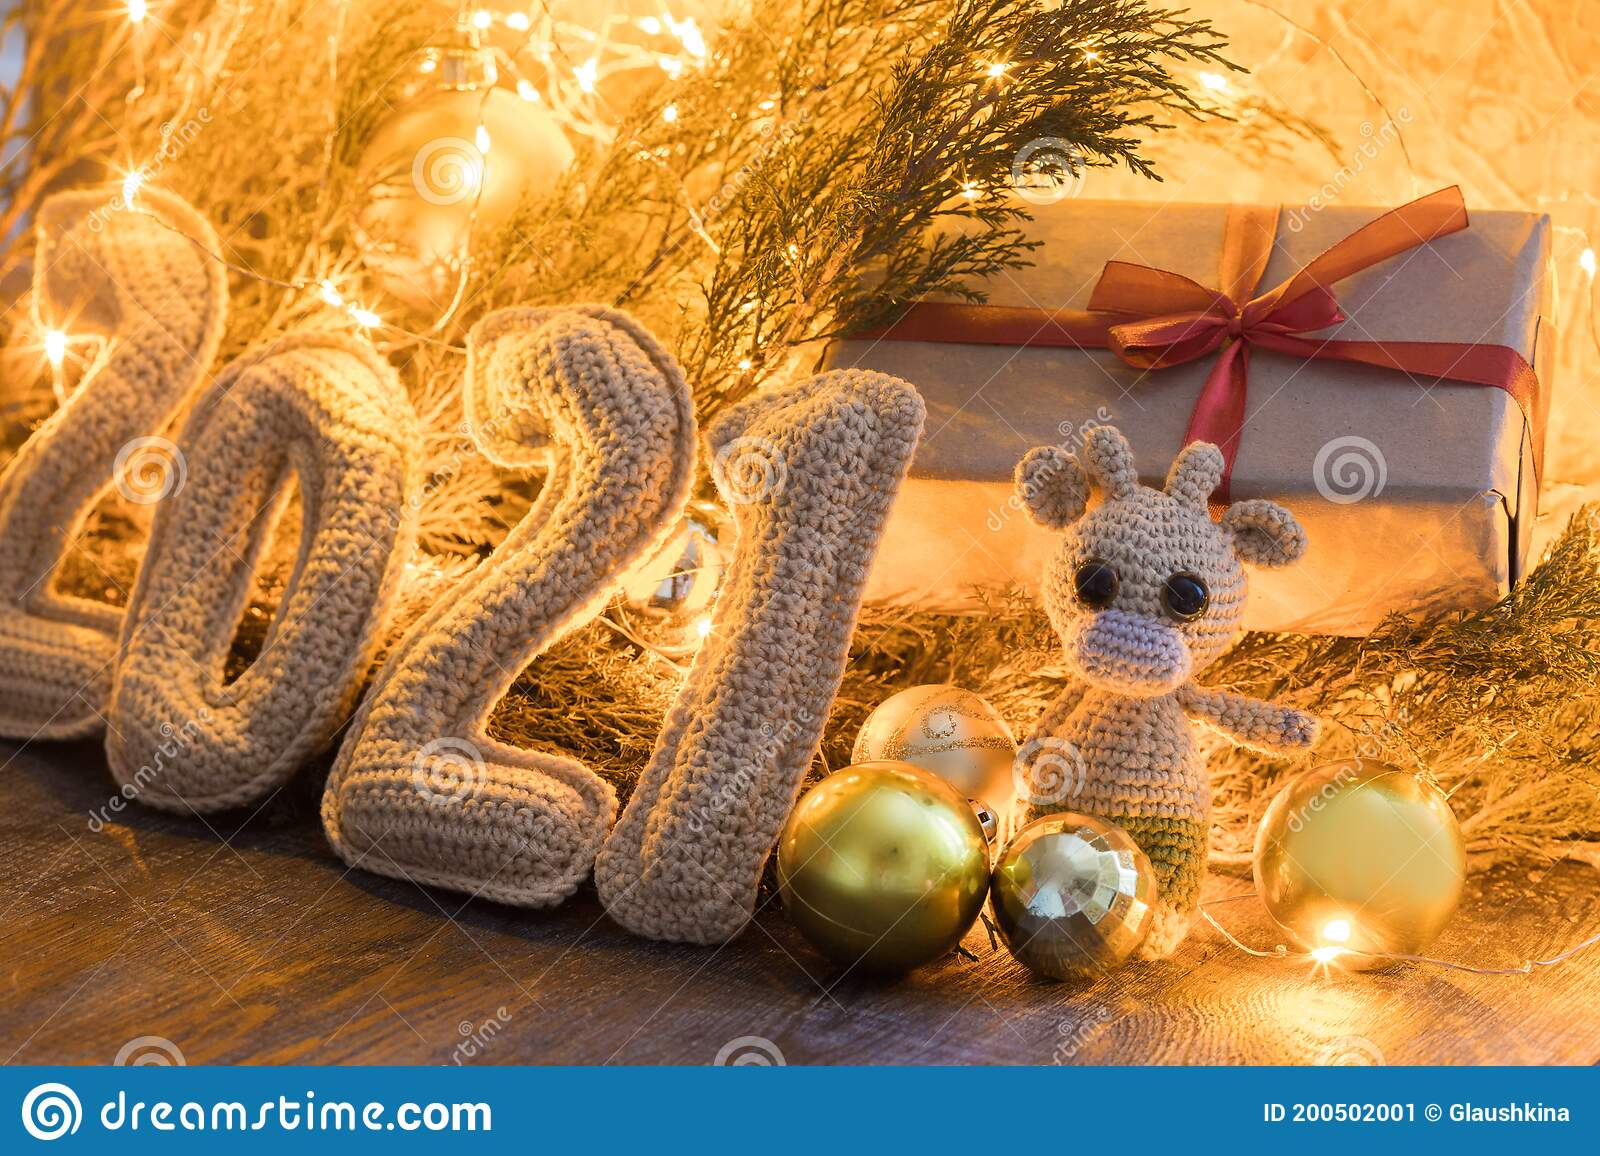 Happy Chinese New Year 2021 Composition Numbers 2021 Gift Box Toy Bull Stock Image Image Of Chinese Decoration 200502001